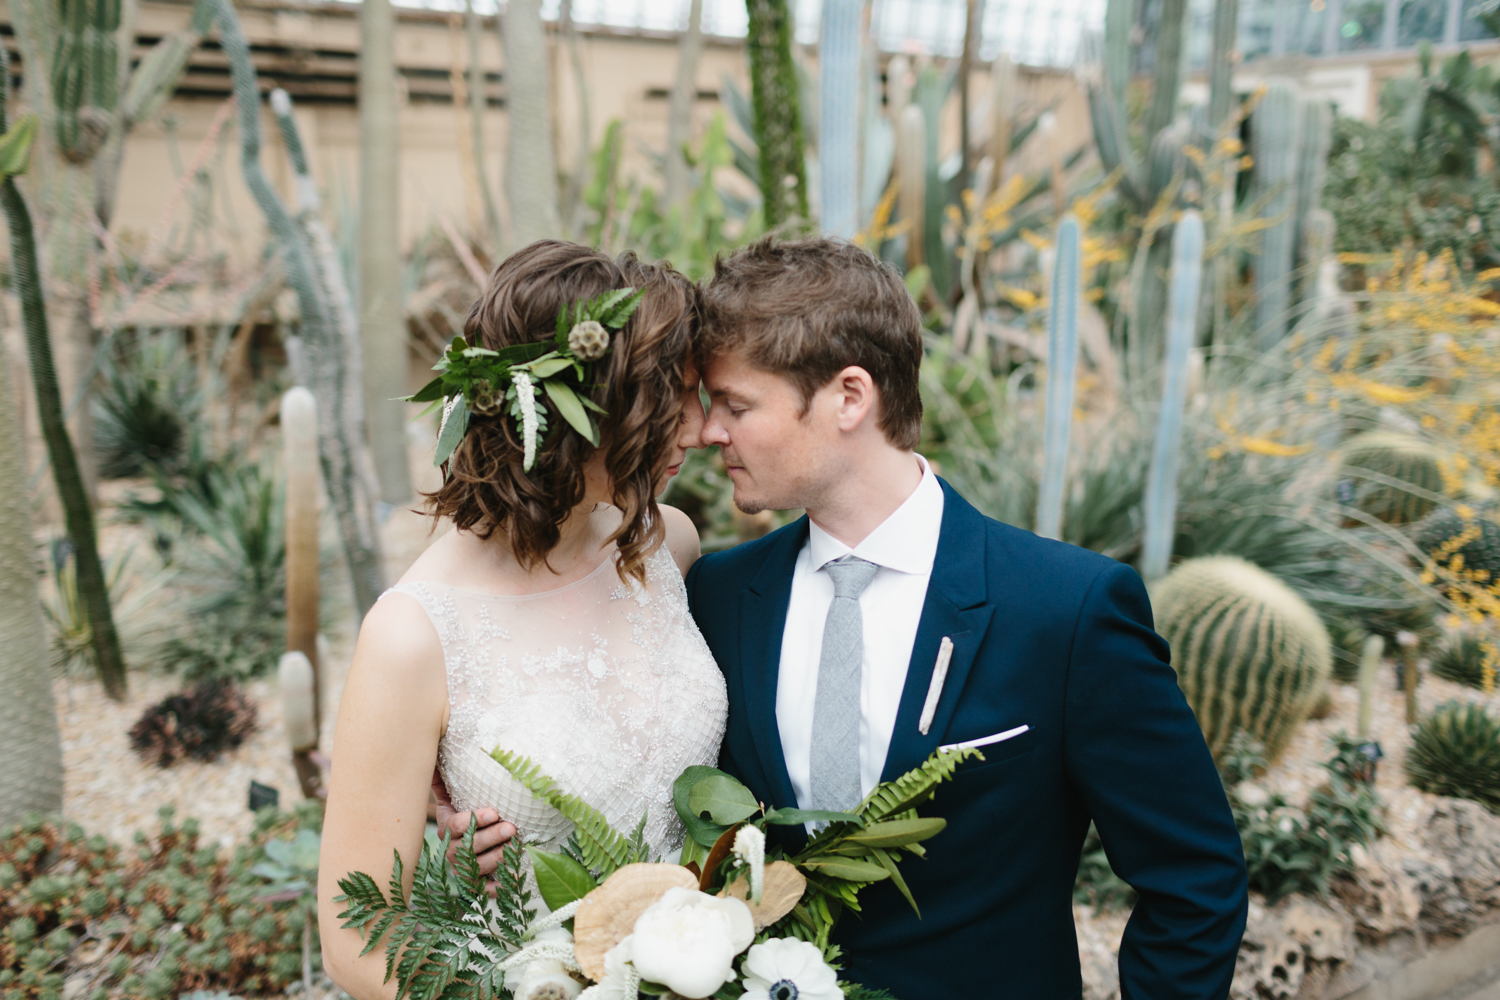 Chicago Garfield Park Conservatory Wedding by Northern Michigan Photographer Mae Stier-049.jpg